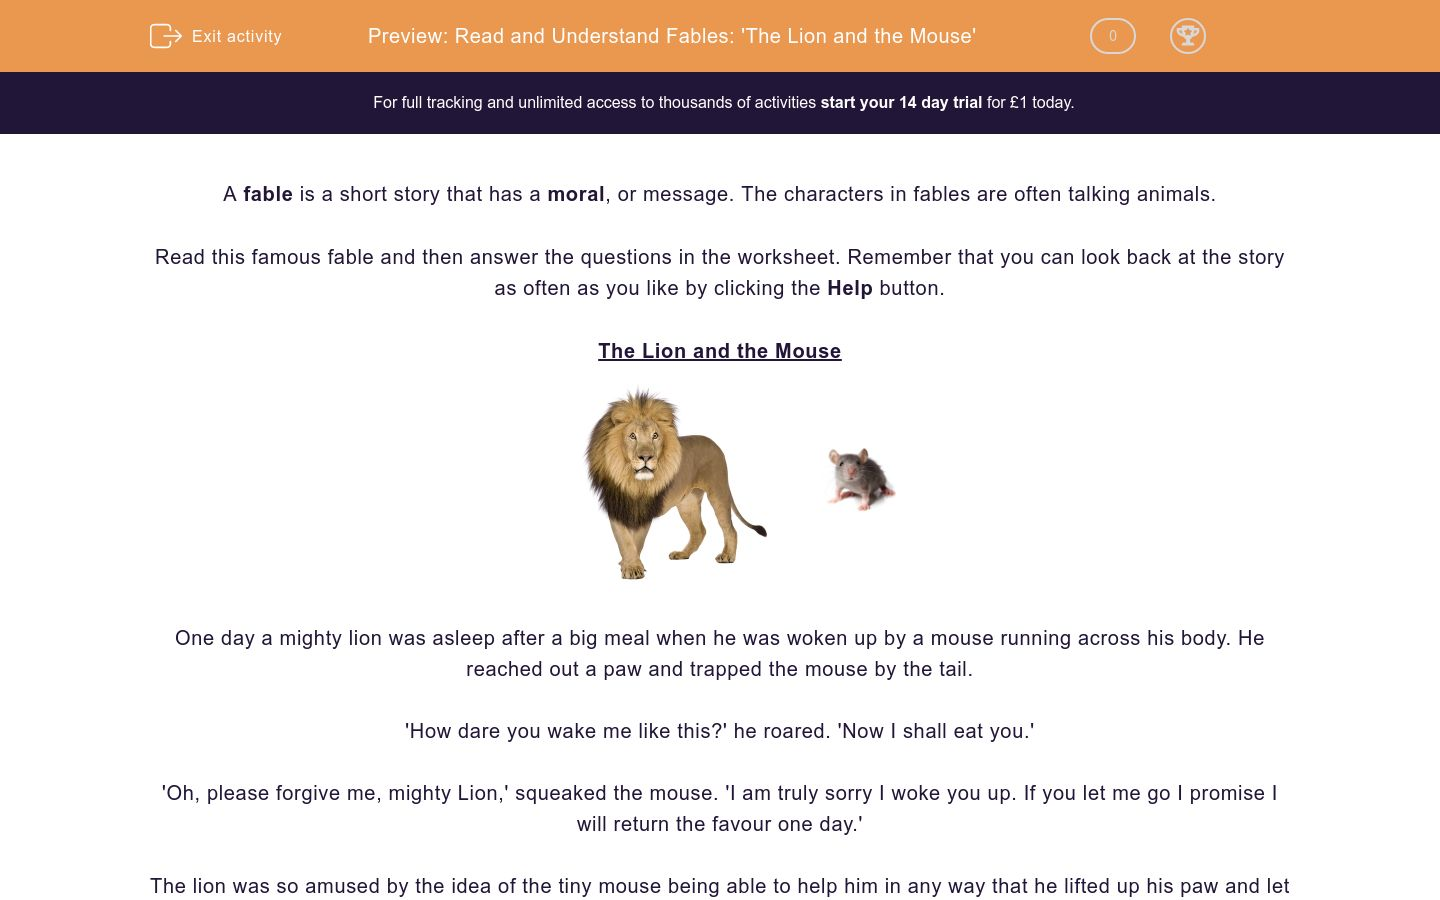 'Read and Understand Fables: 'The Lion and the Mouse'' worksheet